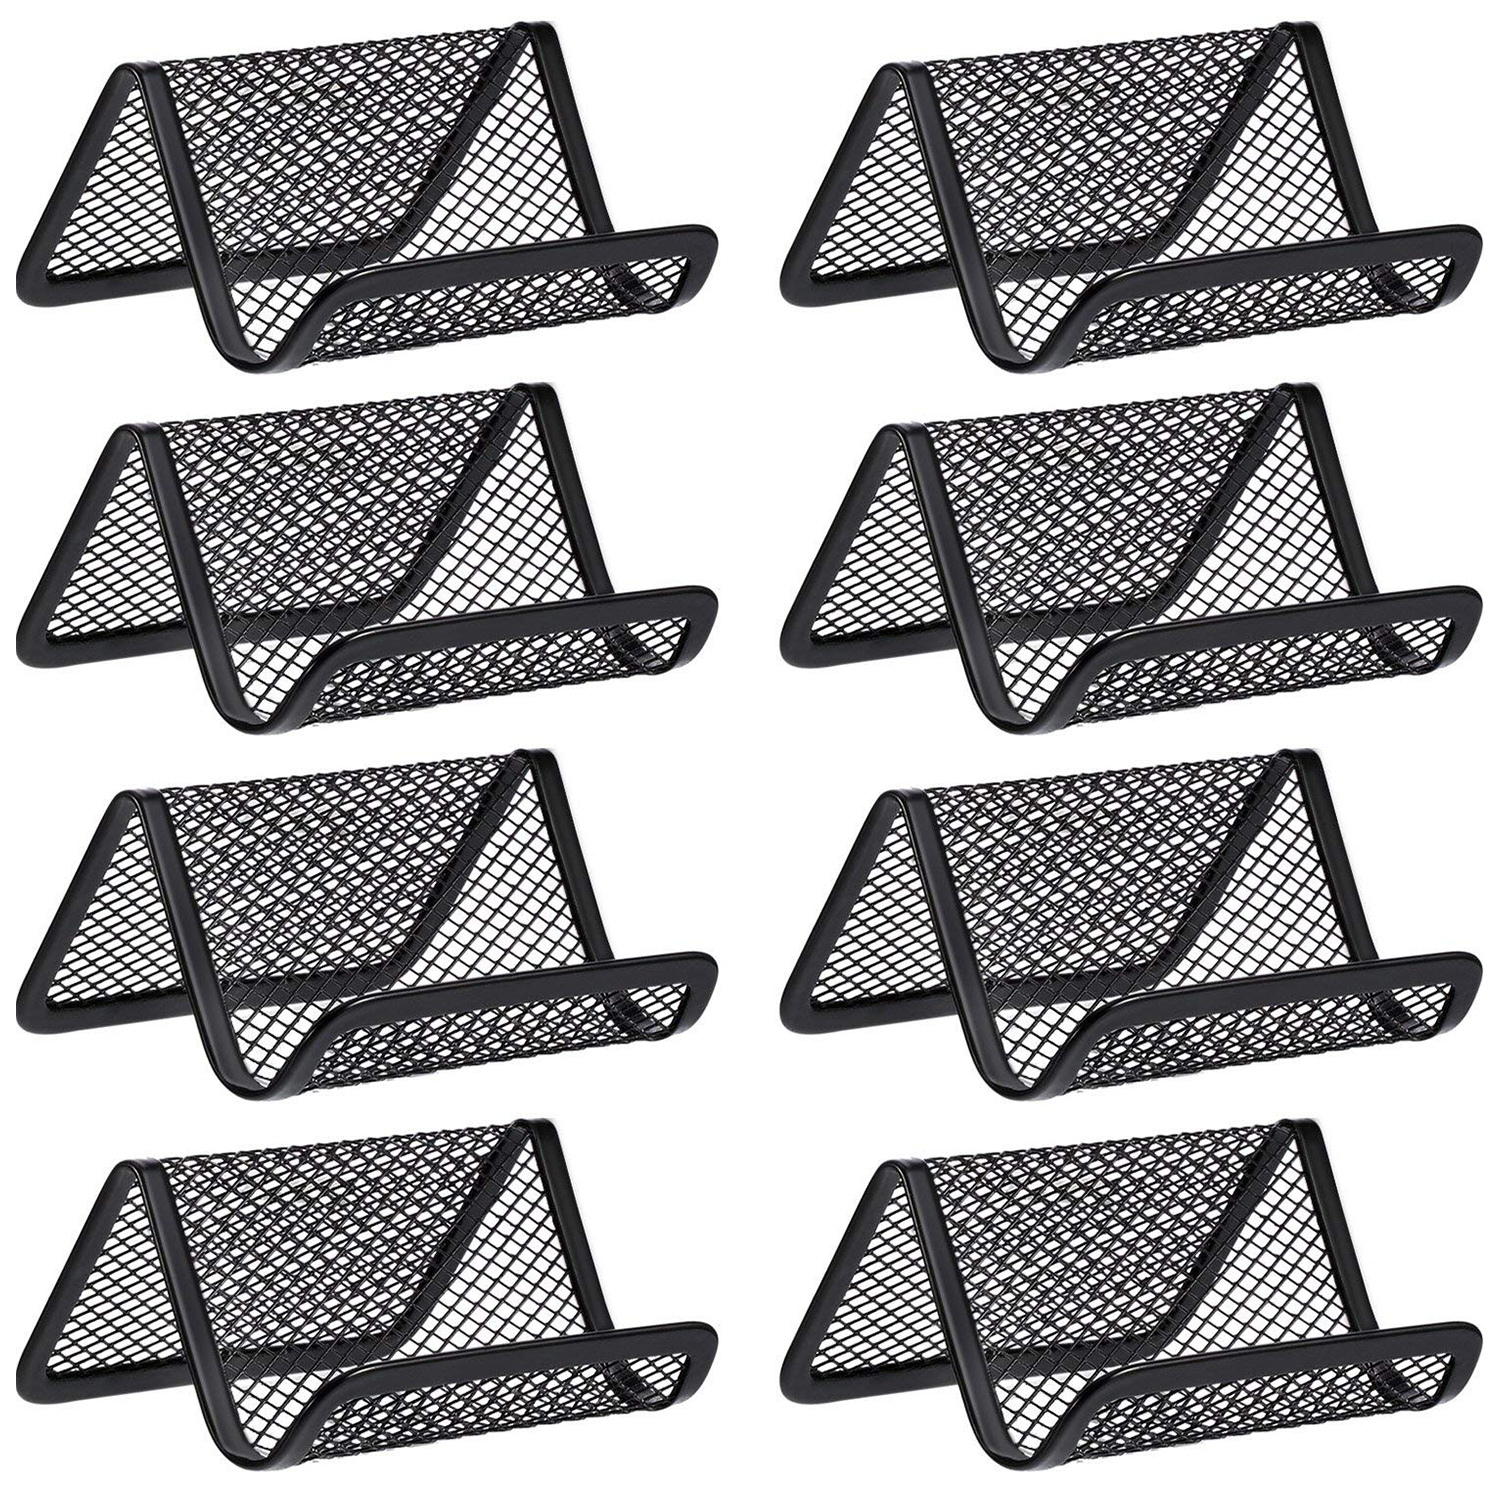 Detail Feedback Questions About 8 Pack Black Metal Mesh Business